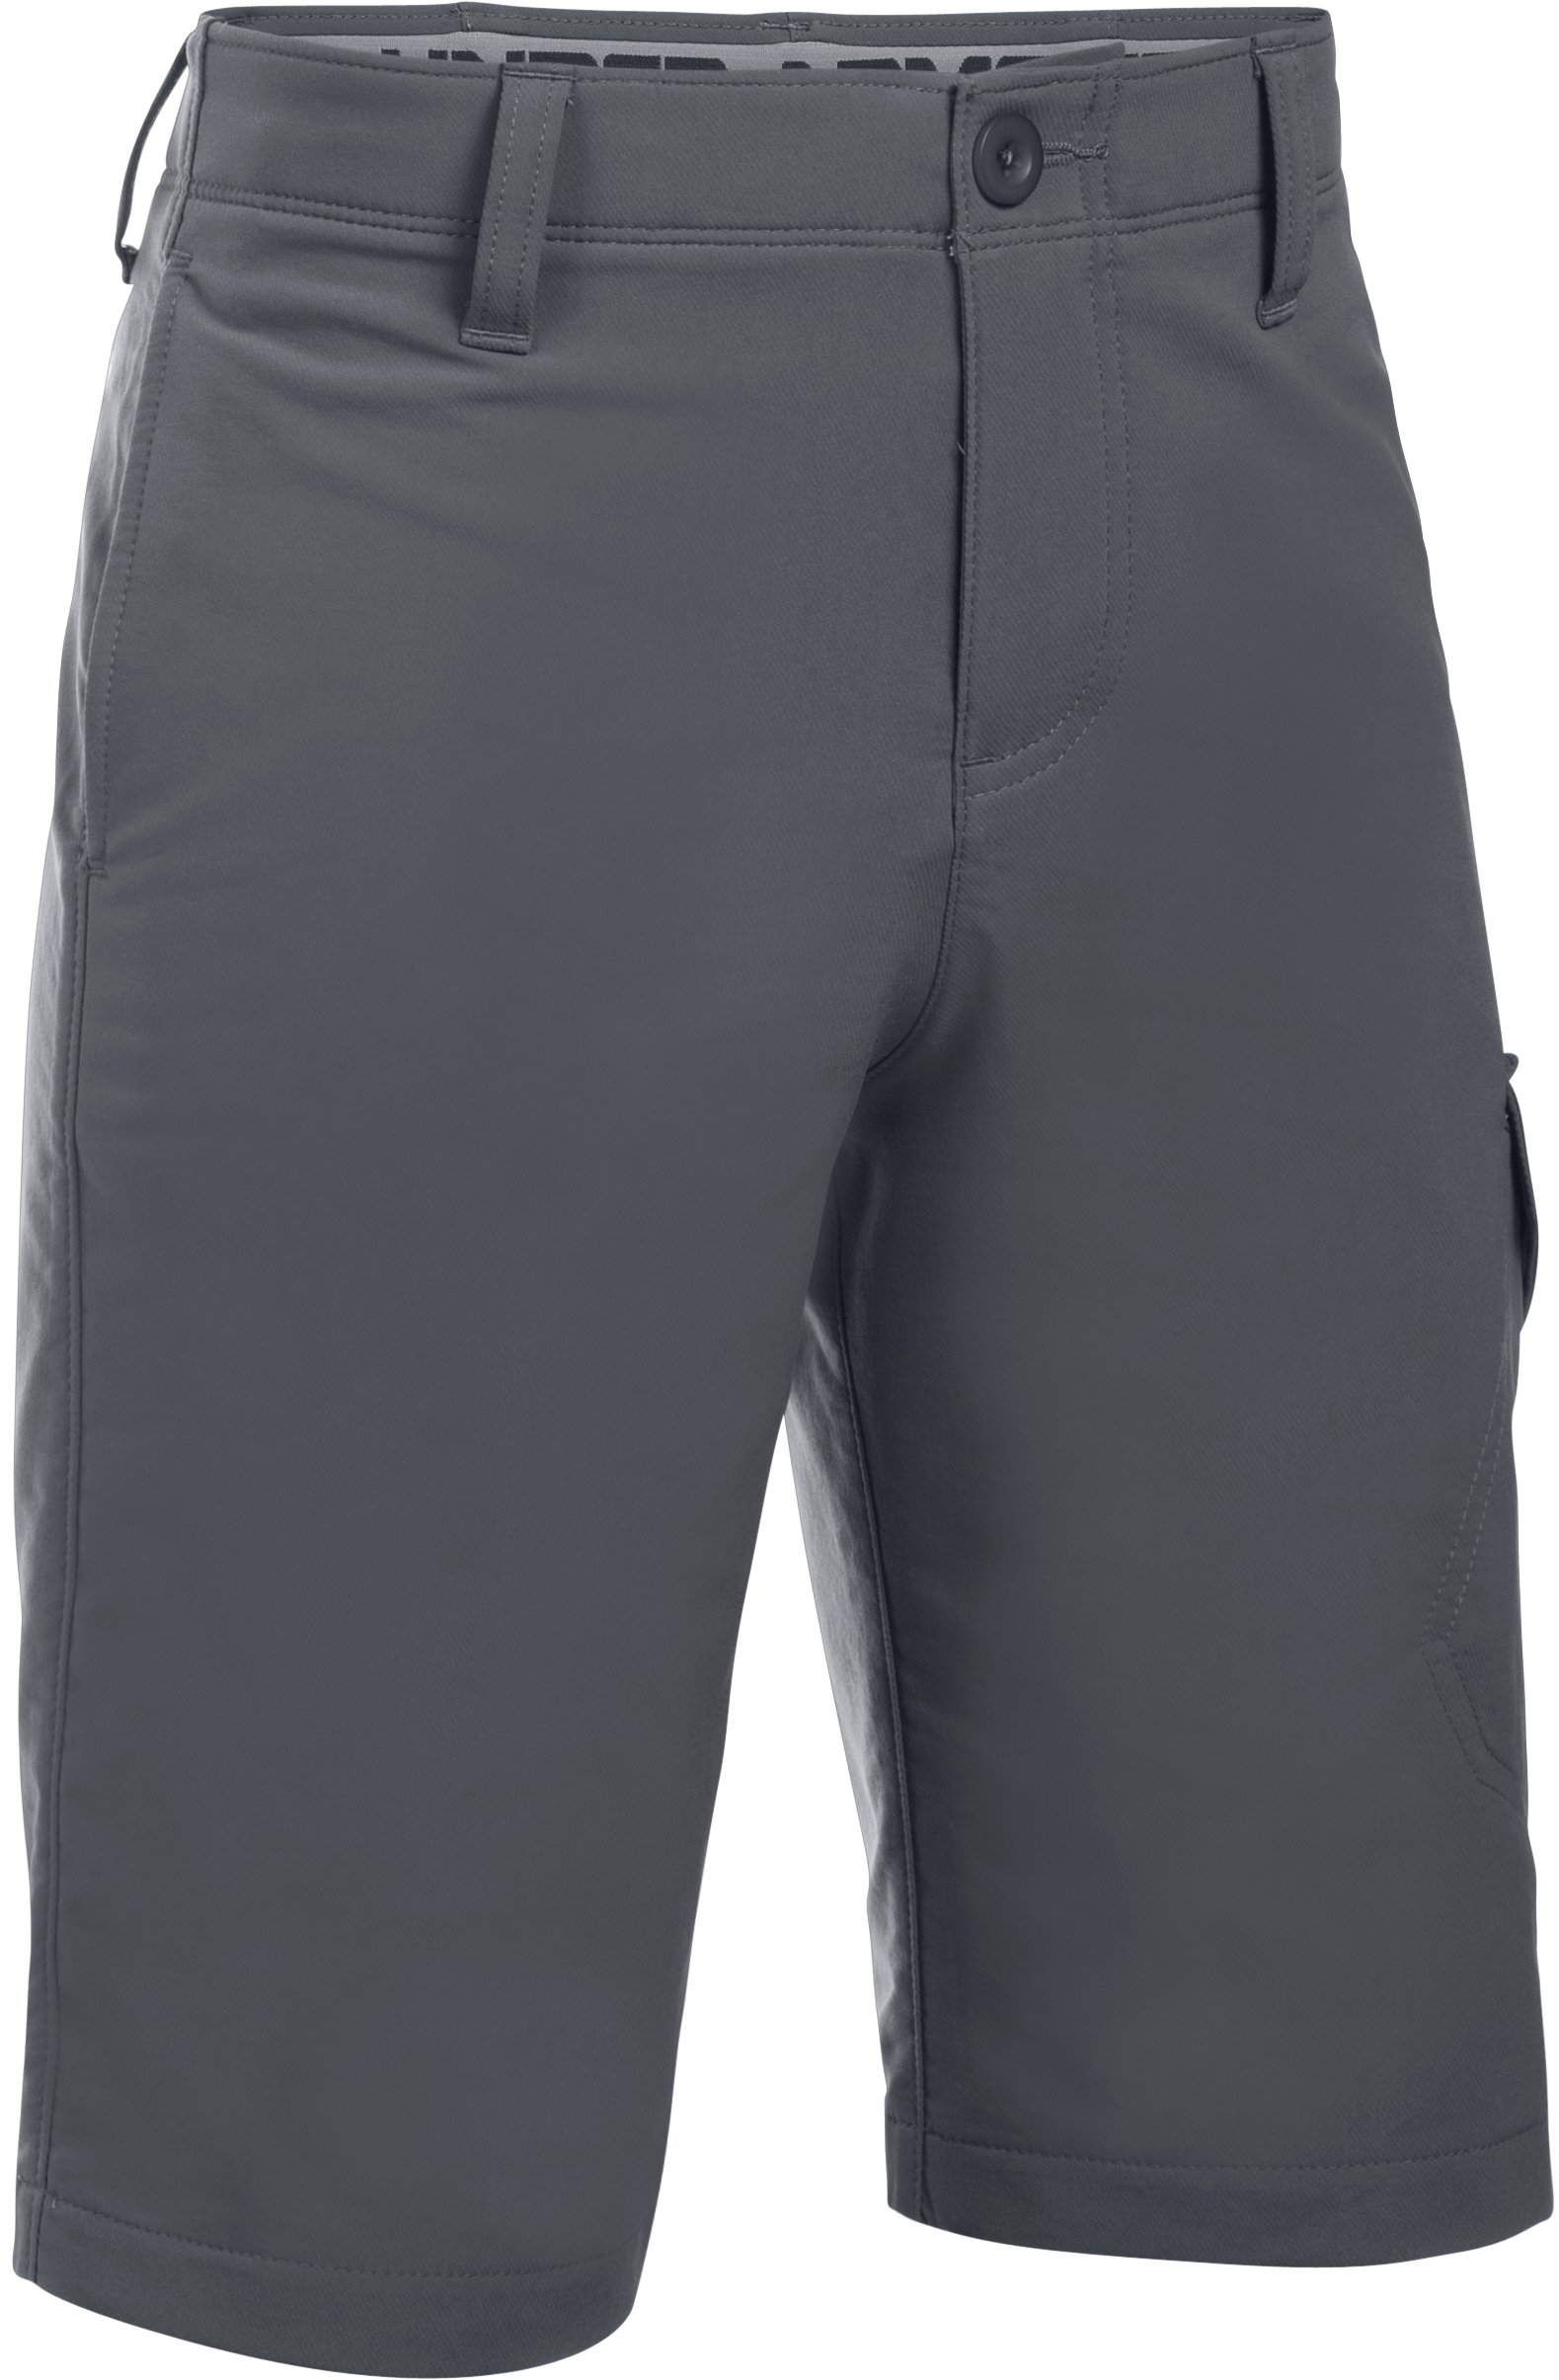 Boys' UA Match Play Cargo Shorts, RHINO GRAY